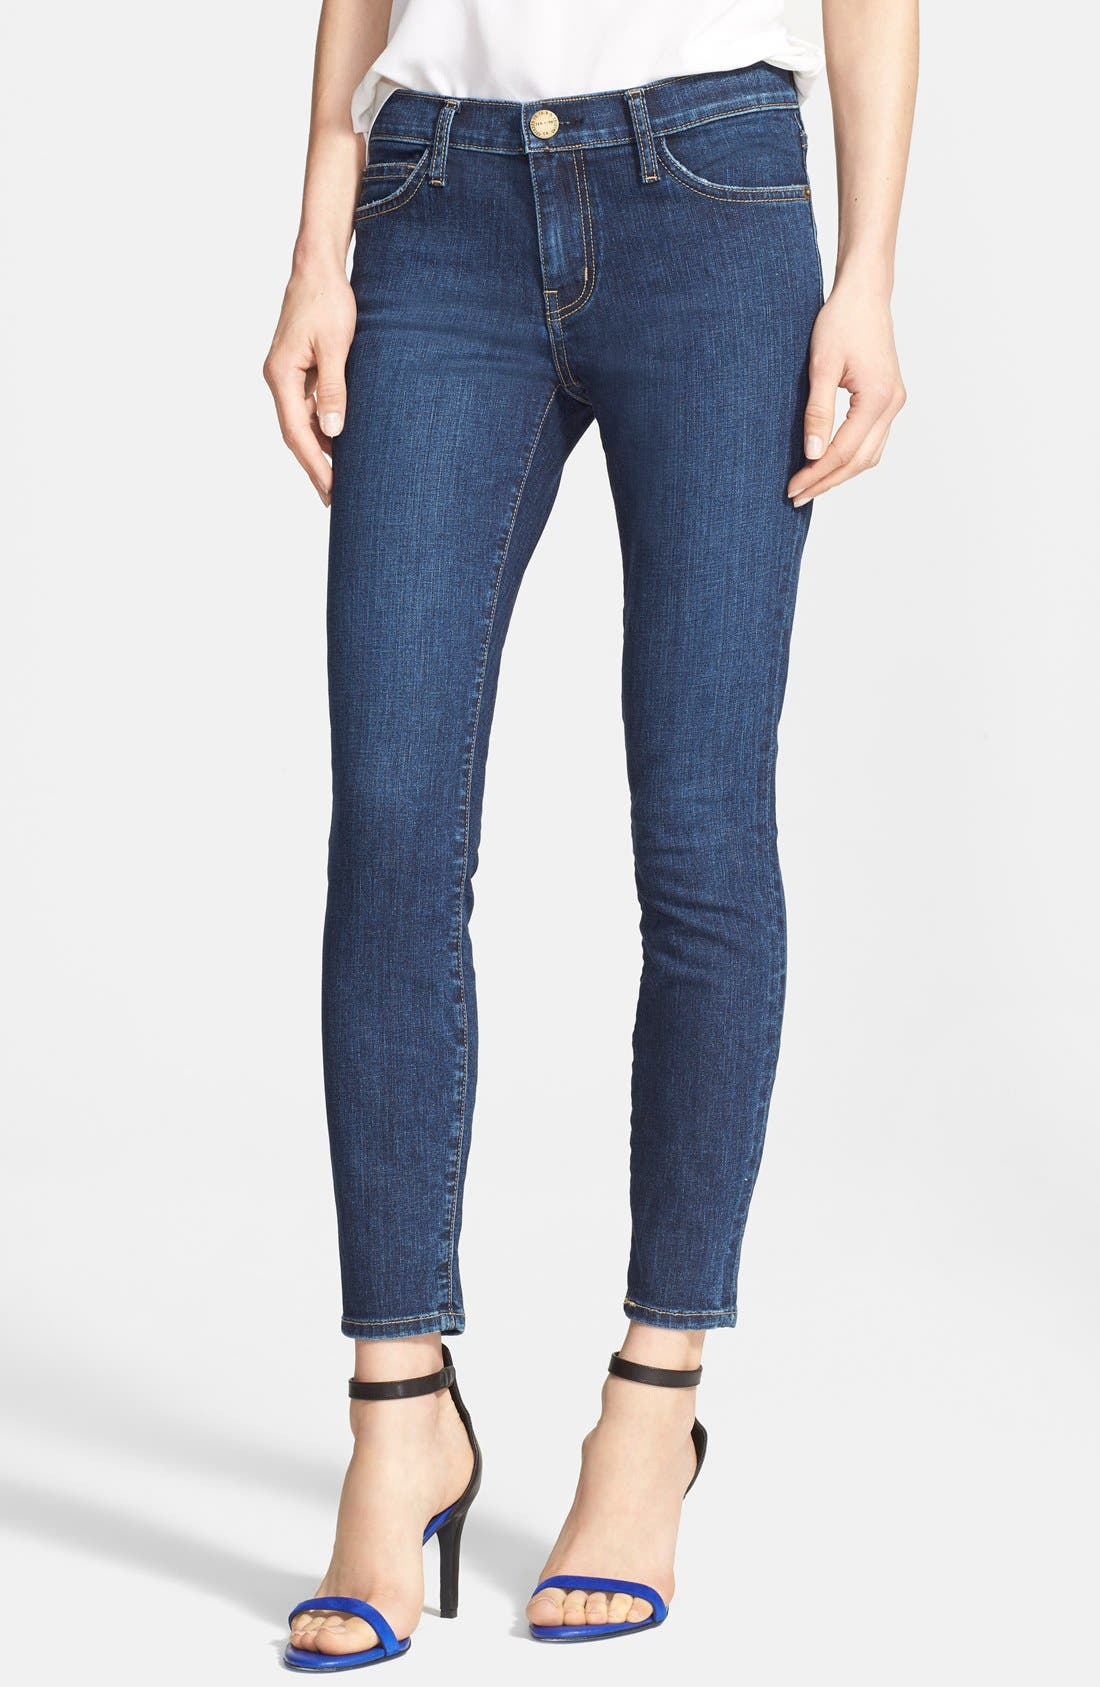 Main Image - Current/Elliott 'The Stiletto' Stretch Skinny Jeans (Reconaissance)